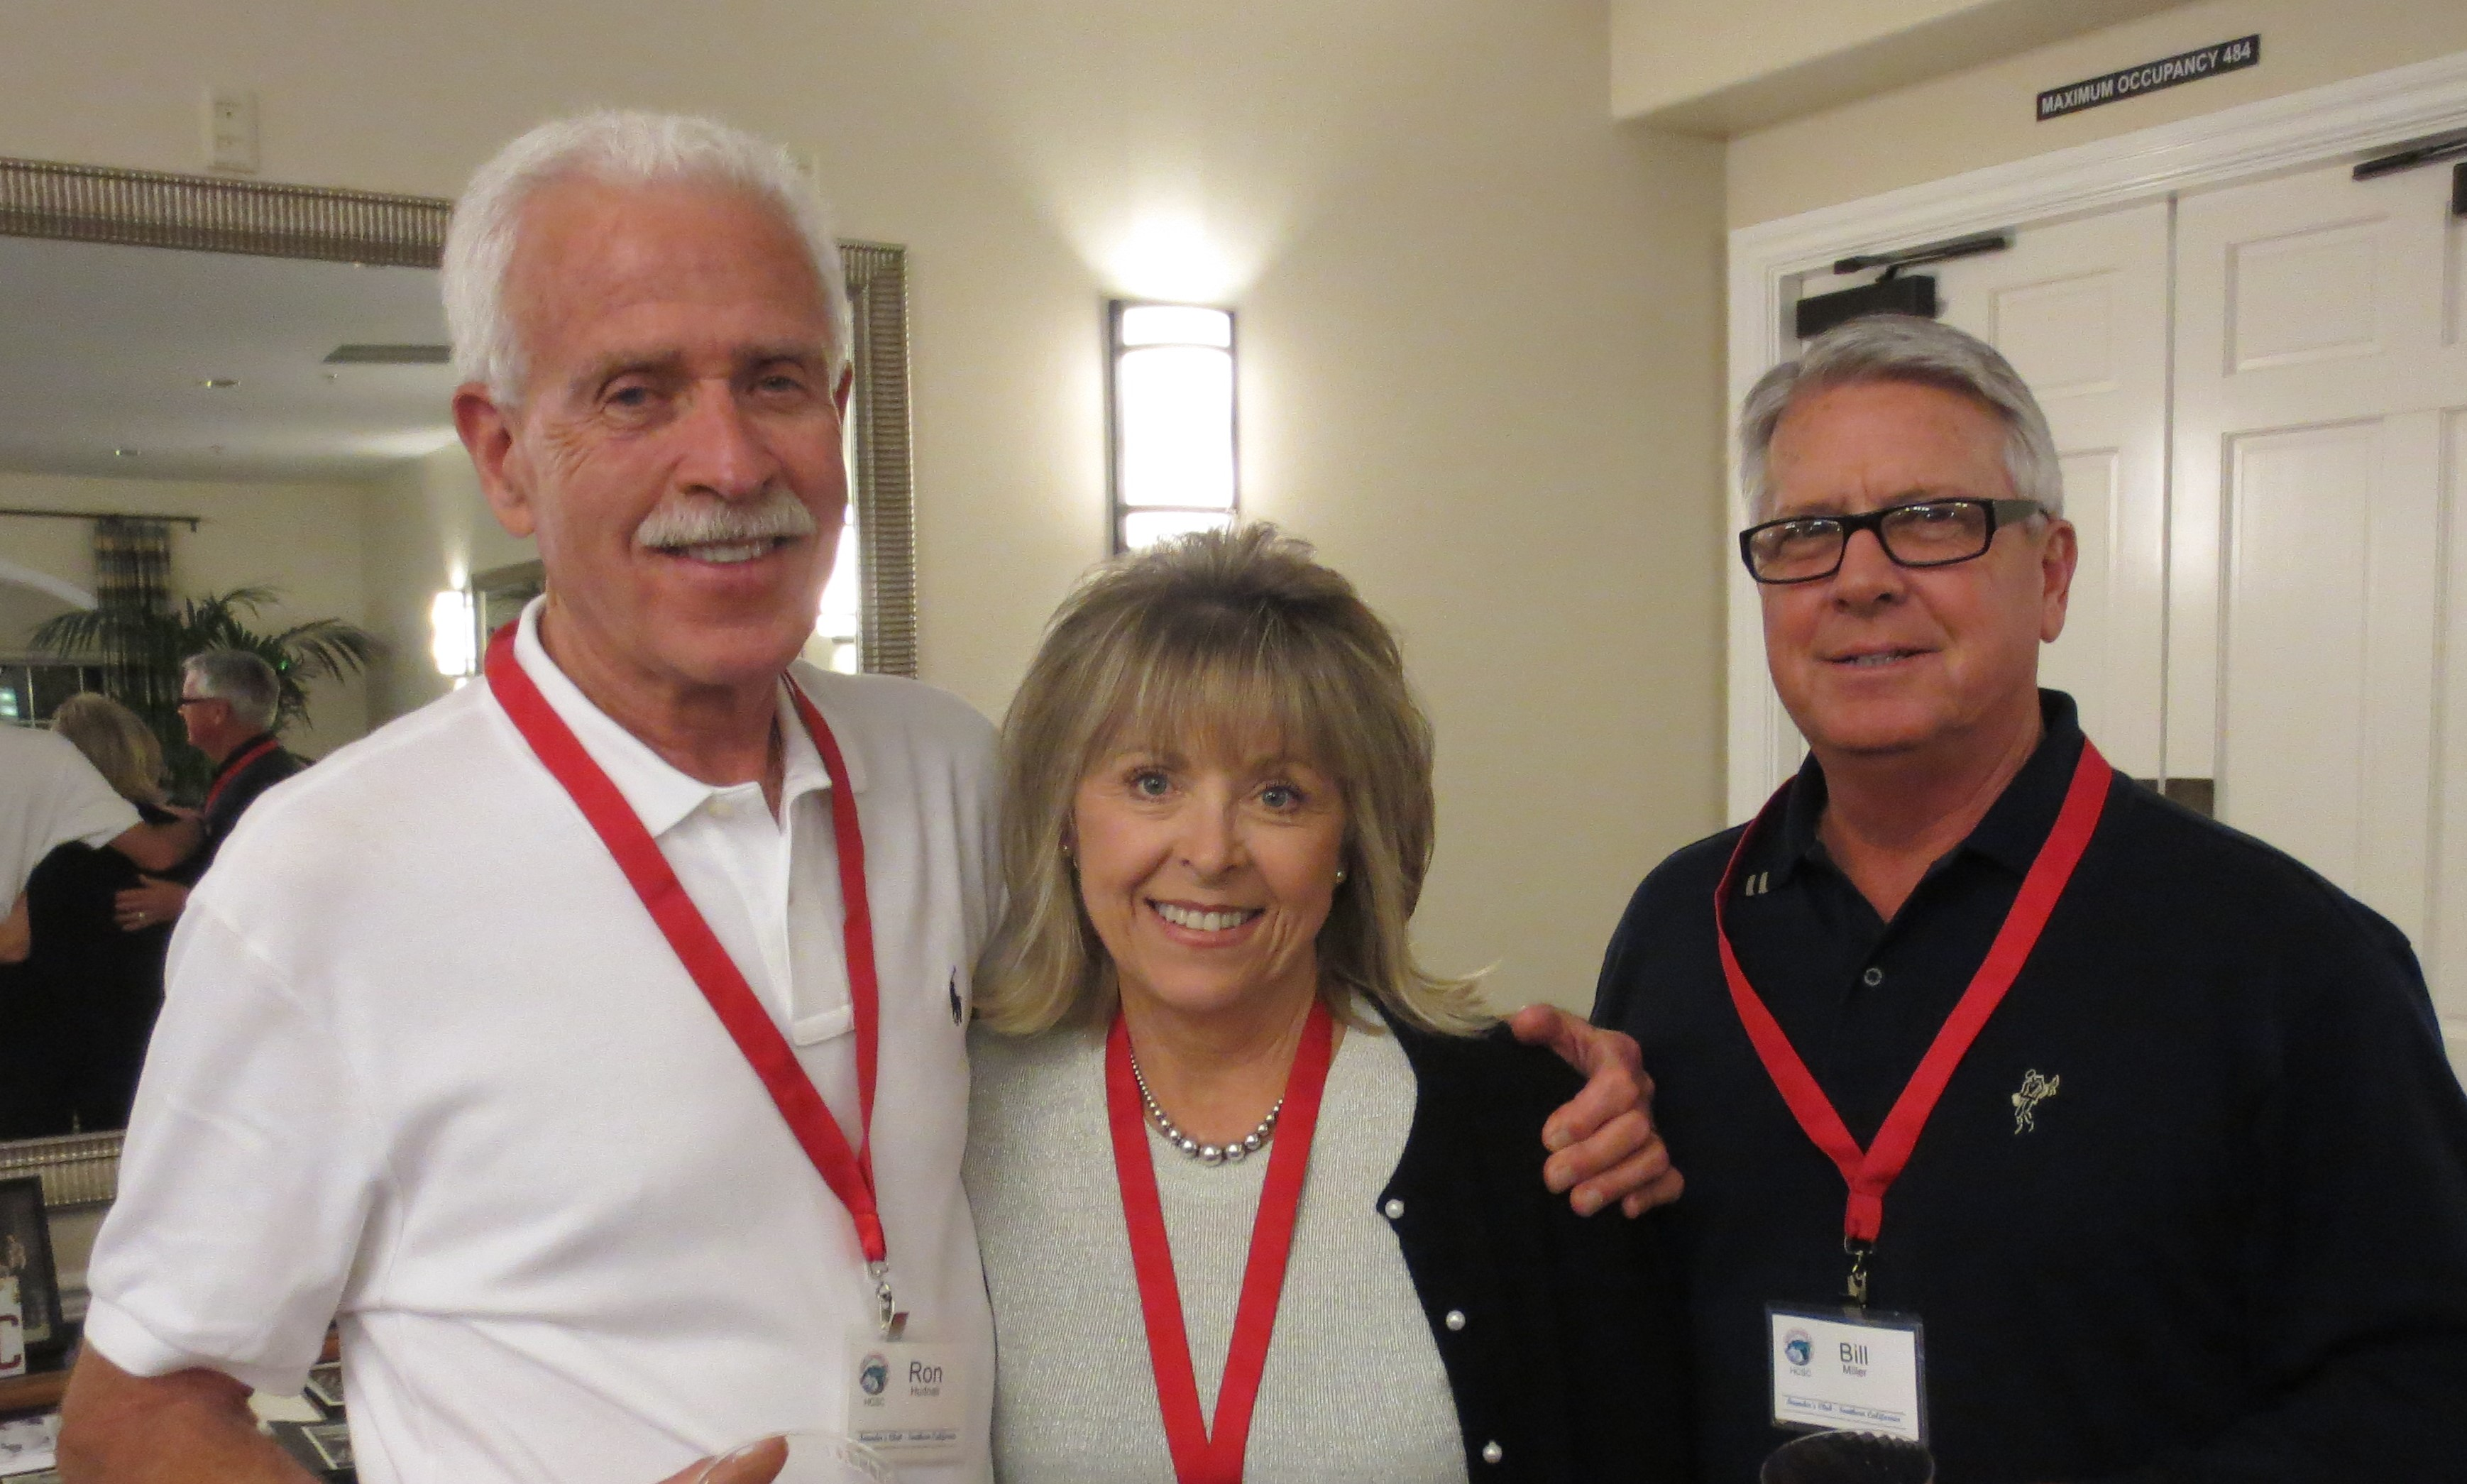 Ron Hudnall alongside Karen and Bill Miller at the Four Seasons Clubhouse.JPG